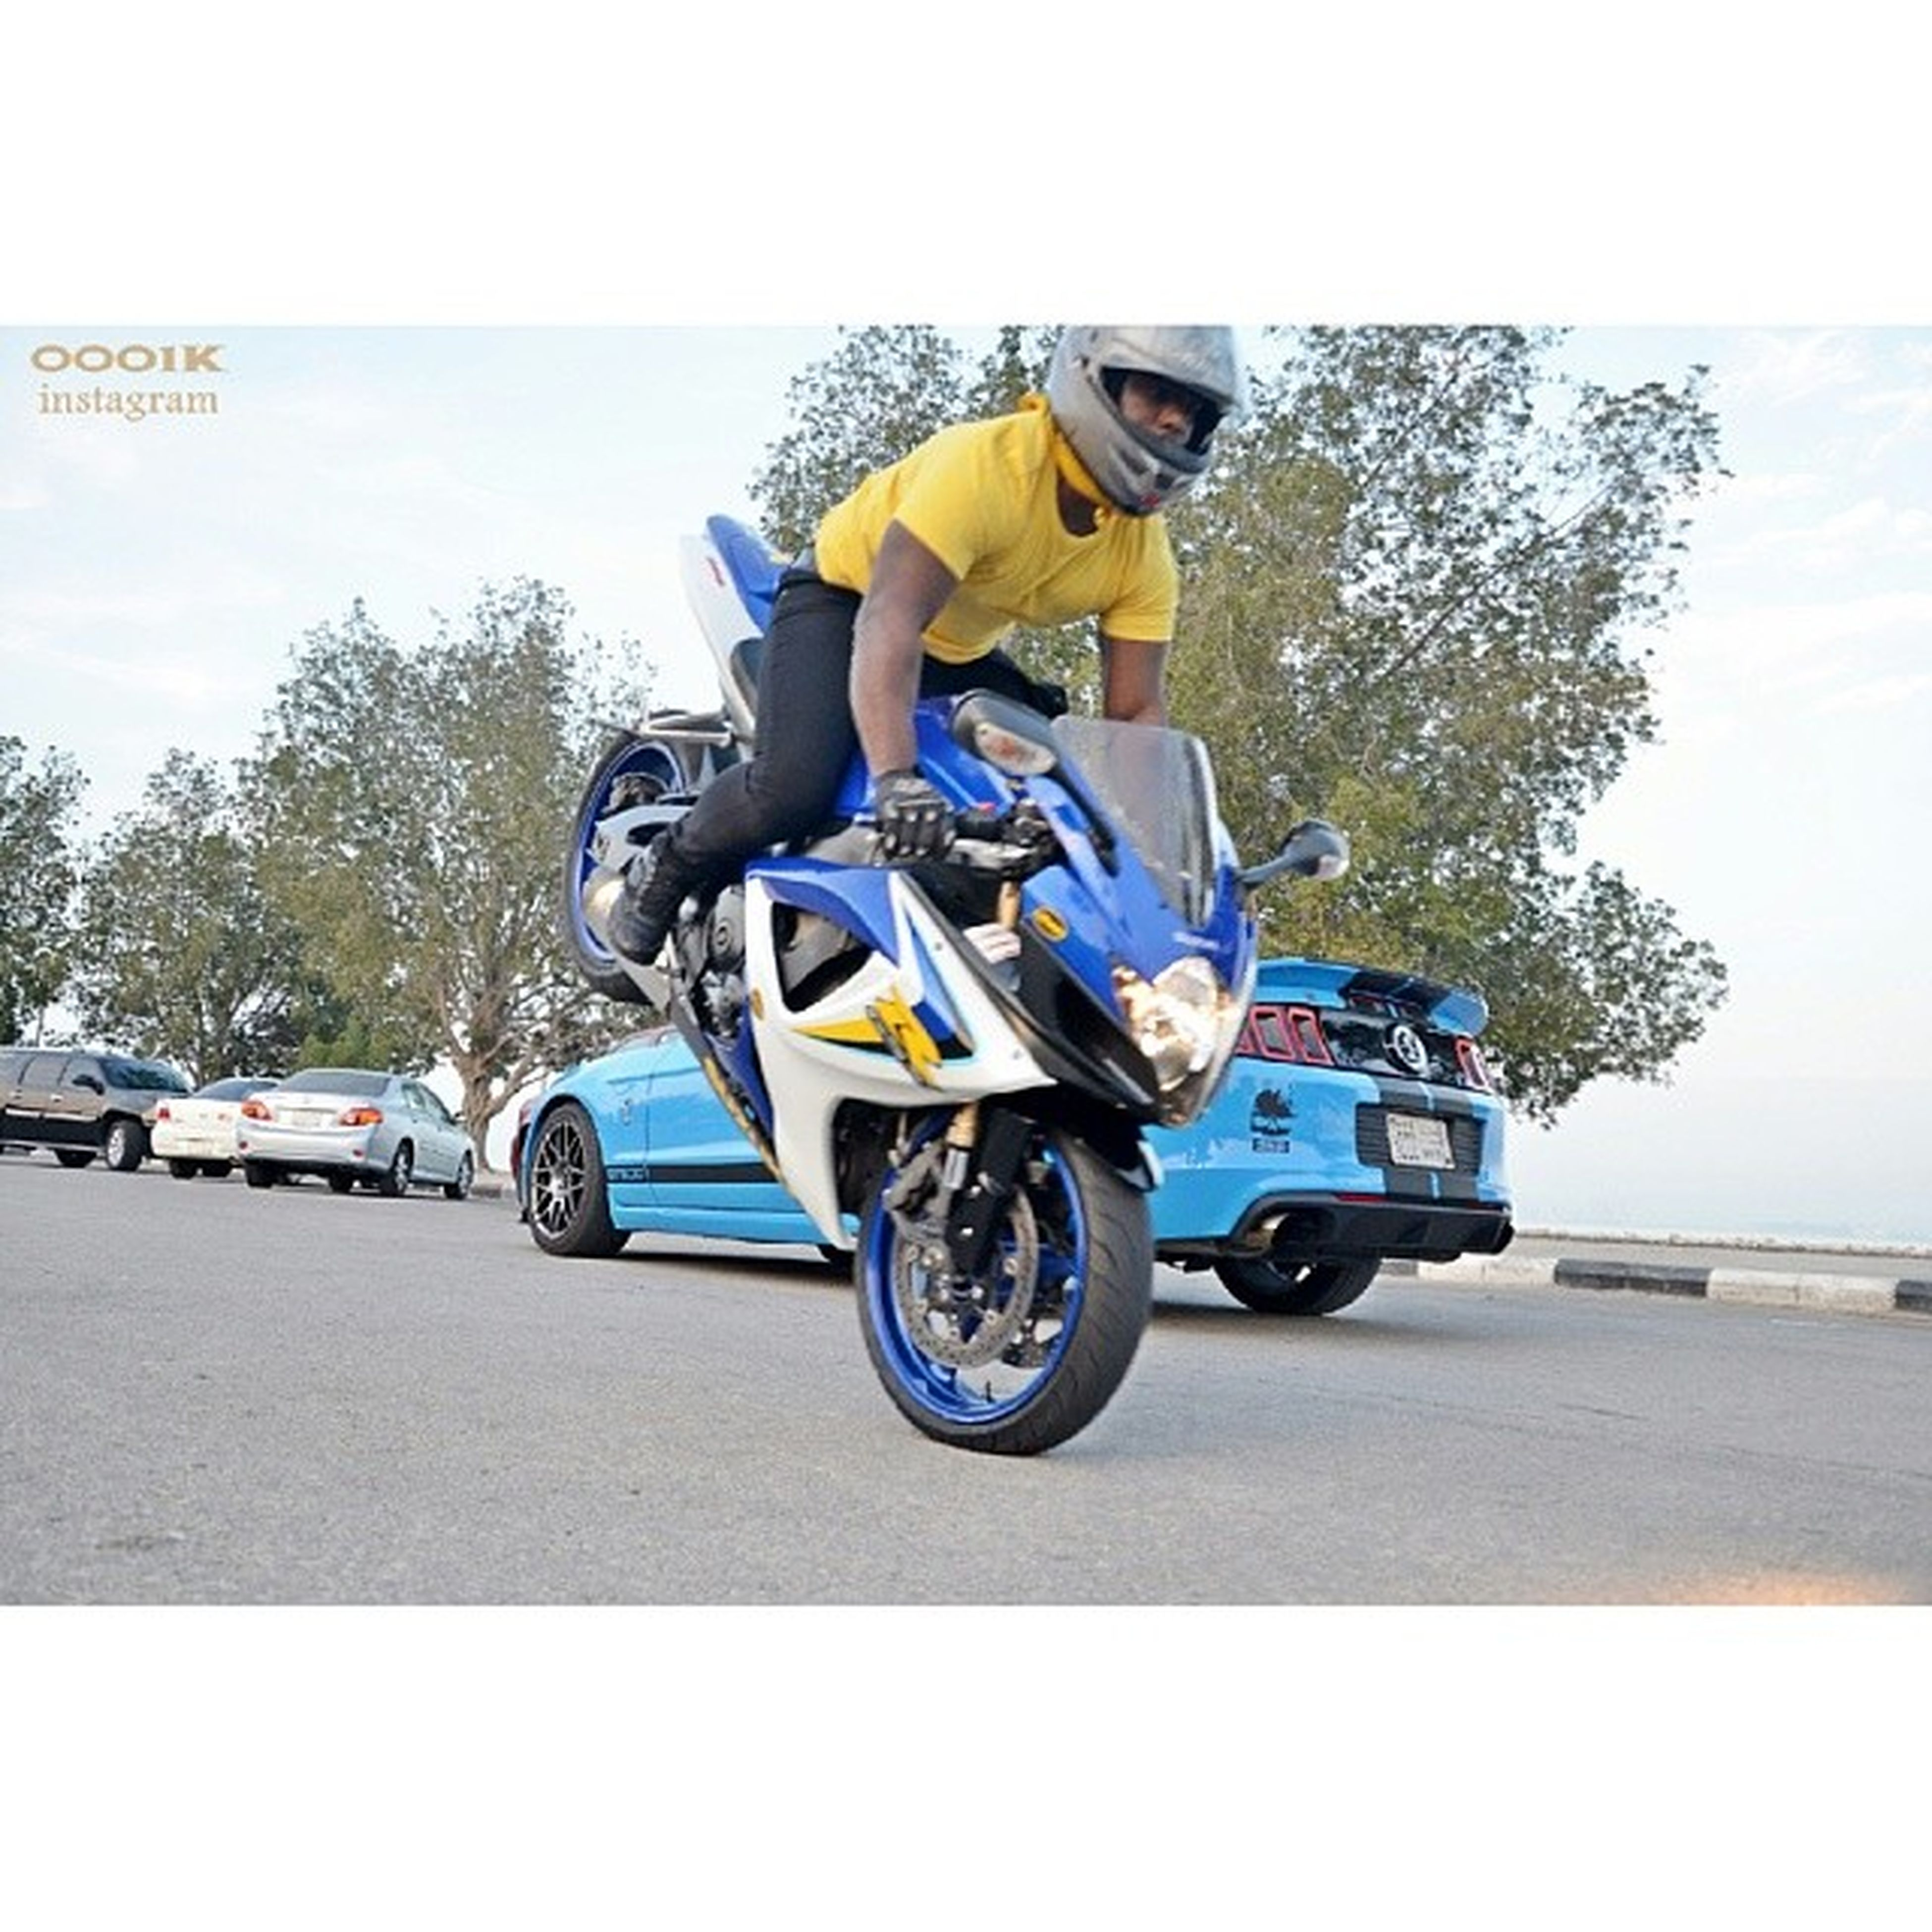 transportation, mode of transport, land vehicle, bicycle, car, stationary, clear sky, tree, parked, parking, travel, sunlight, street, road, day, yellow, motorcycle, riding, side view, on the move